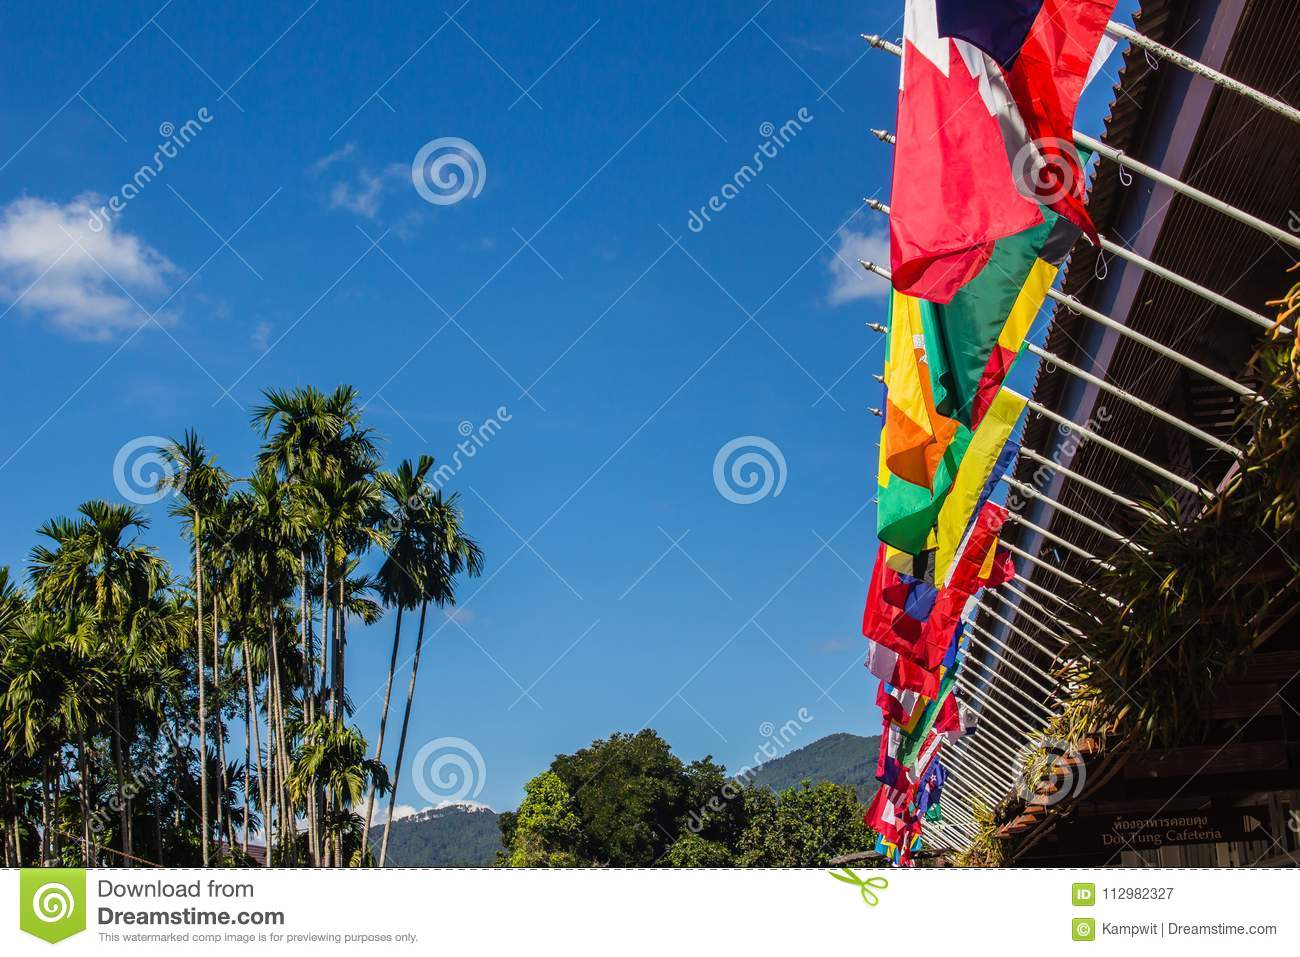 Colorful of international flags on clear blue sky.